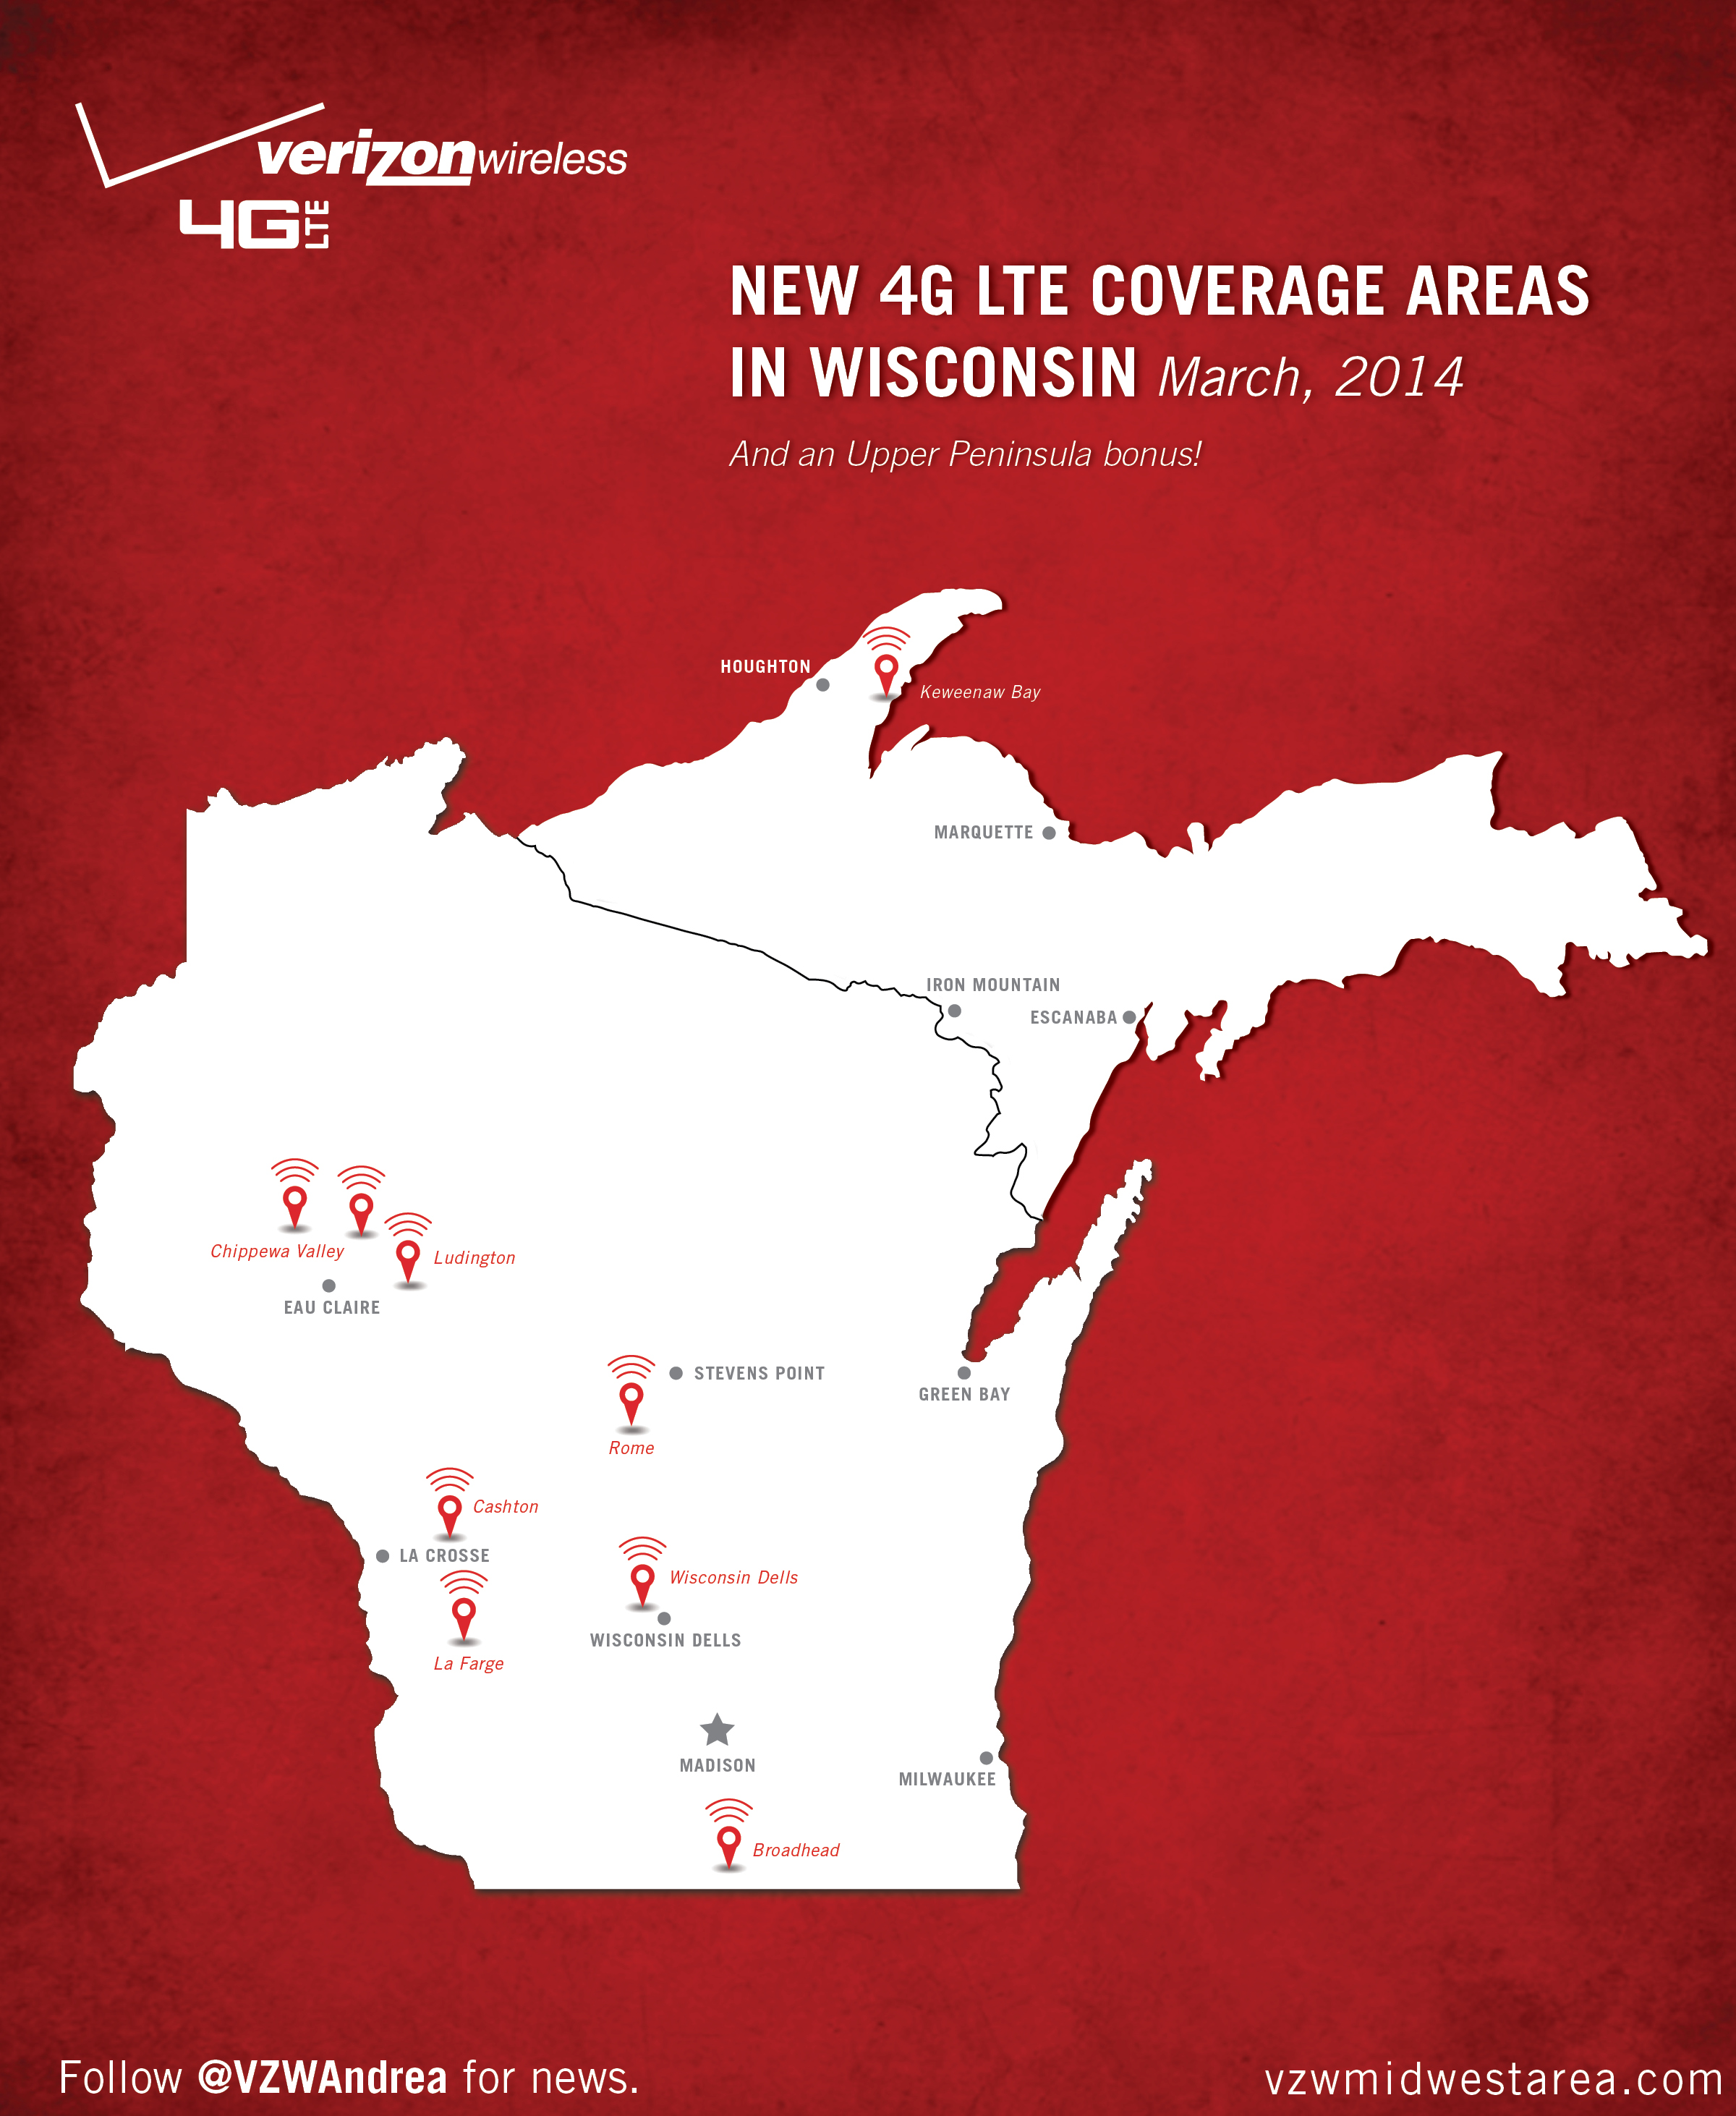 expanded verizon g lte network in wisconsin and upper peninsula  - connectivity is important – especially when you're traveling longerdistances and depend on reliable coverage to keep you in touch